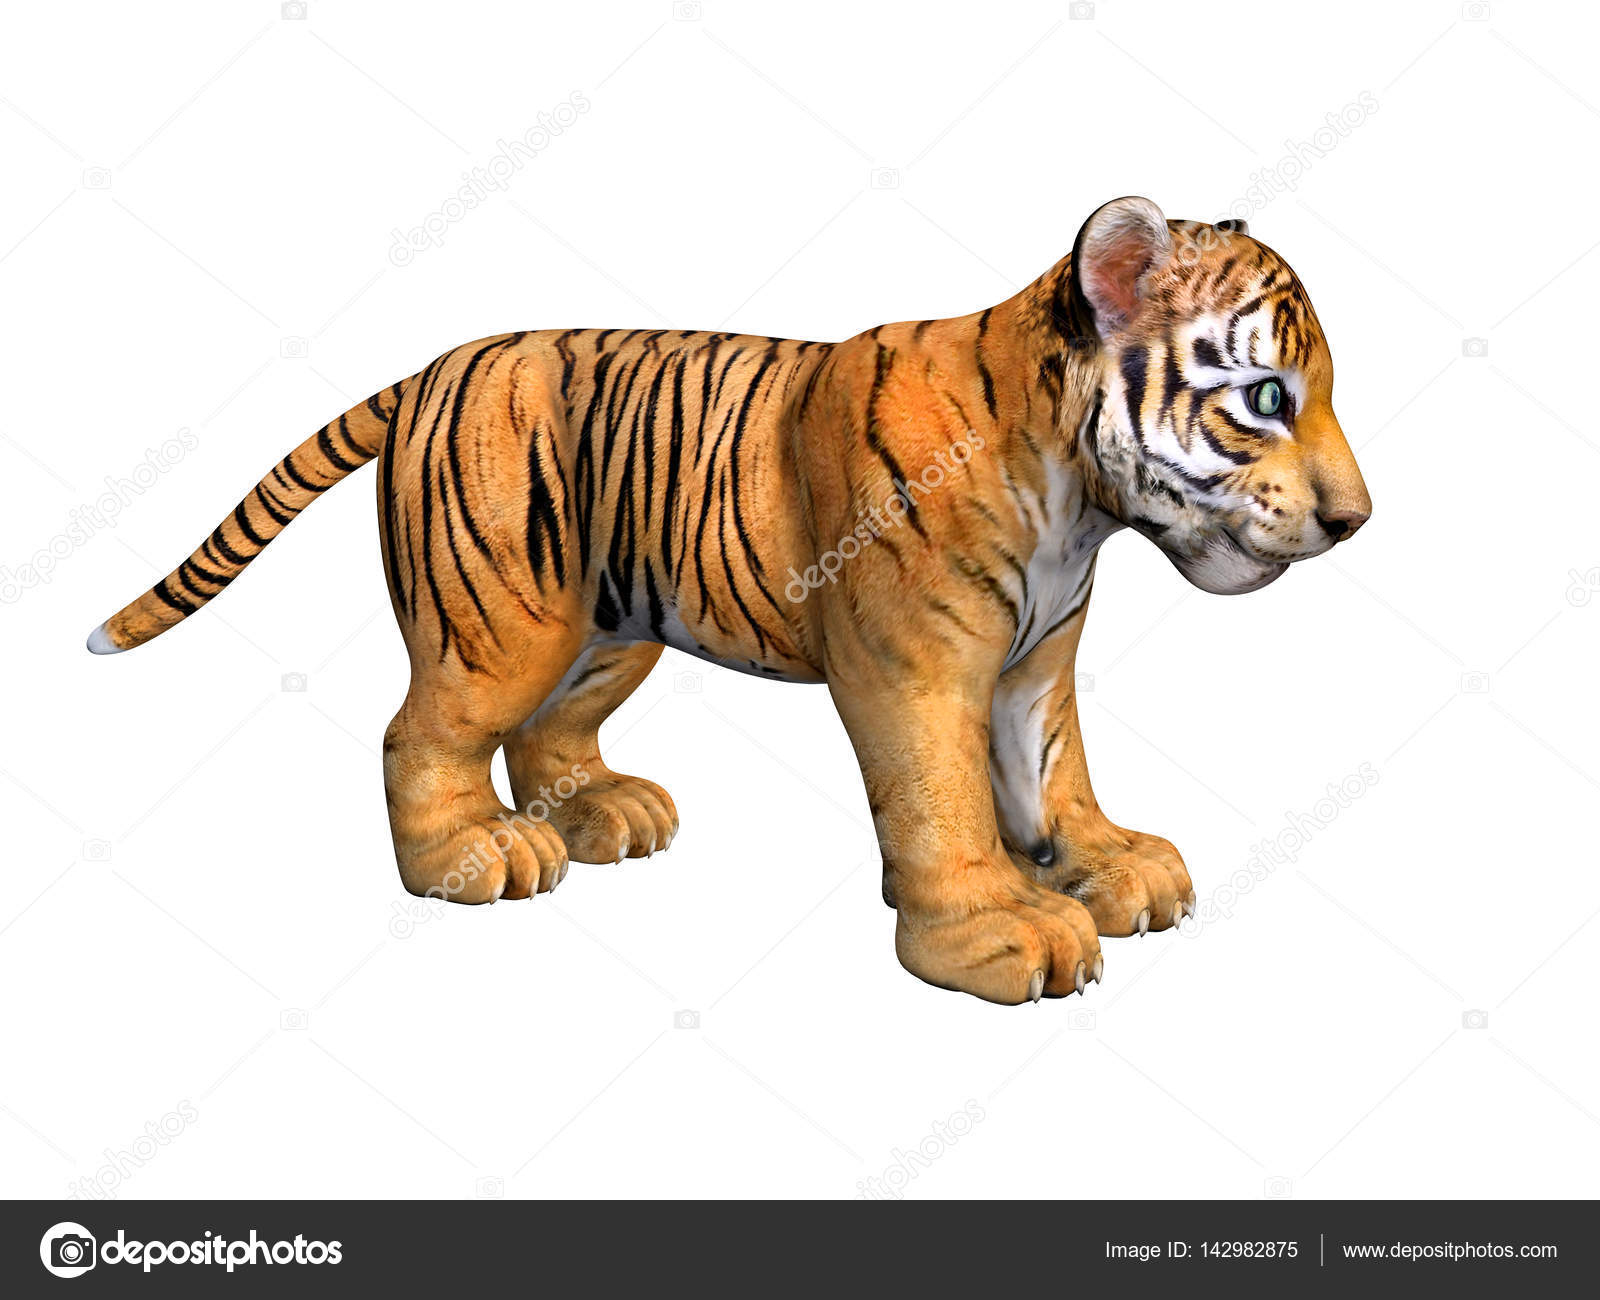 Cute tiger cub 3d image isolated on white stock photo cute tiger cub 3d image isolated on white background photo by ladybirdannad altavistaventures Gallery